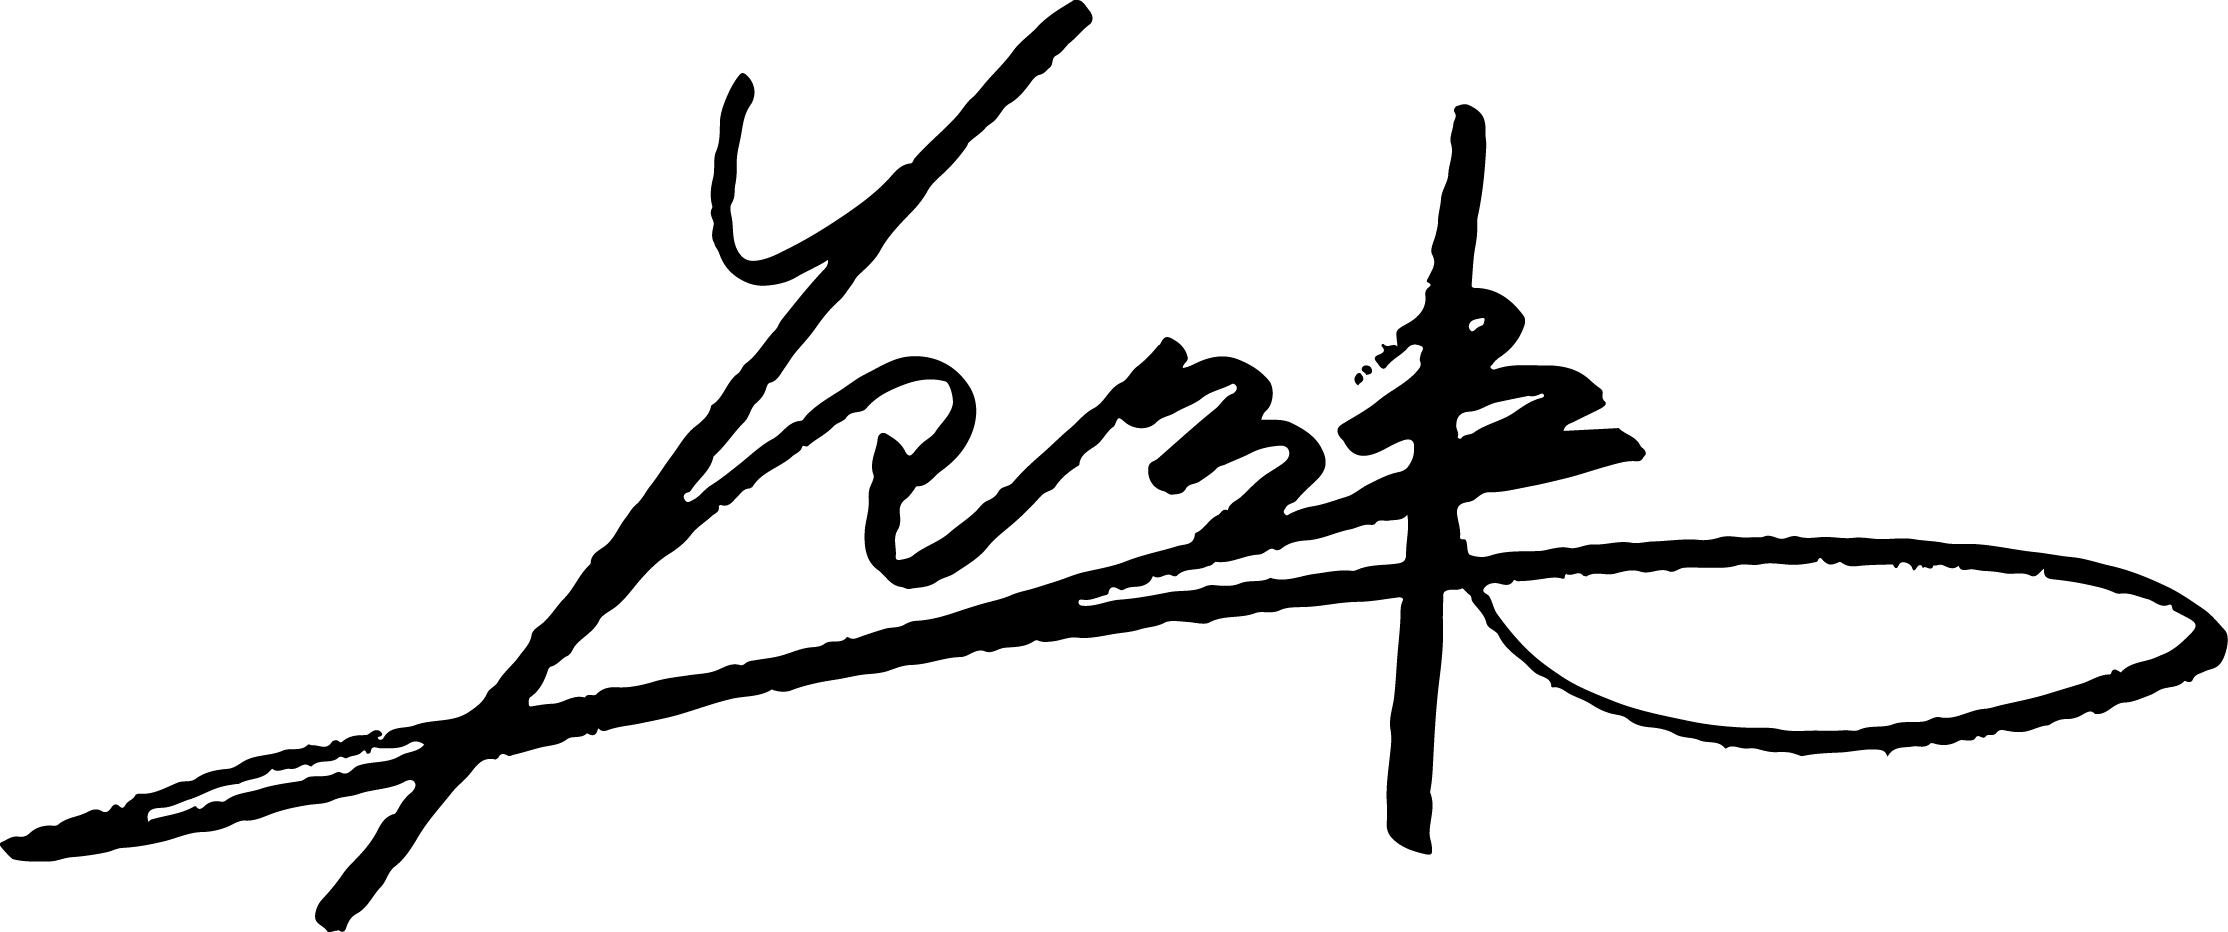 Fenway Fan's Signature